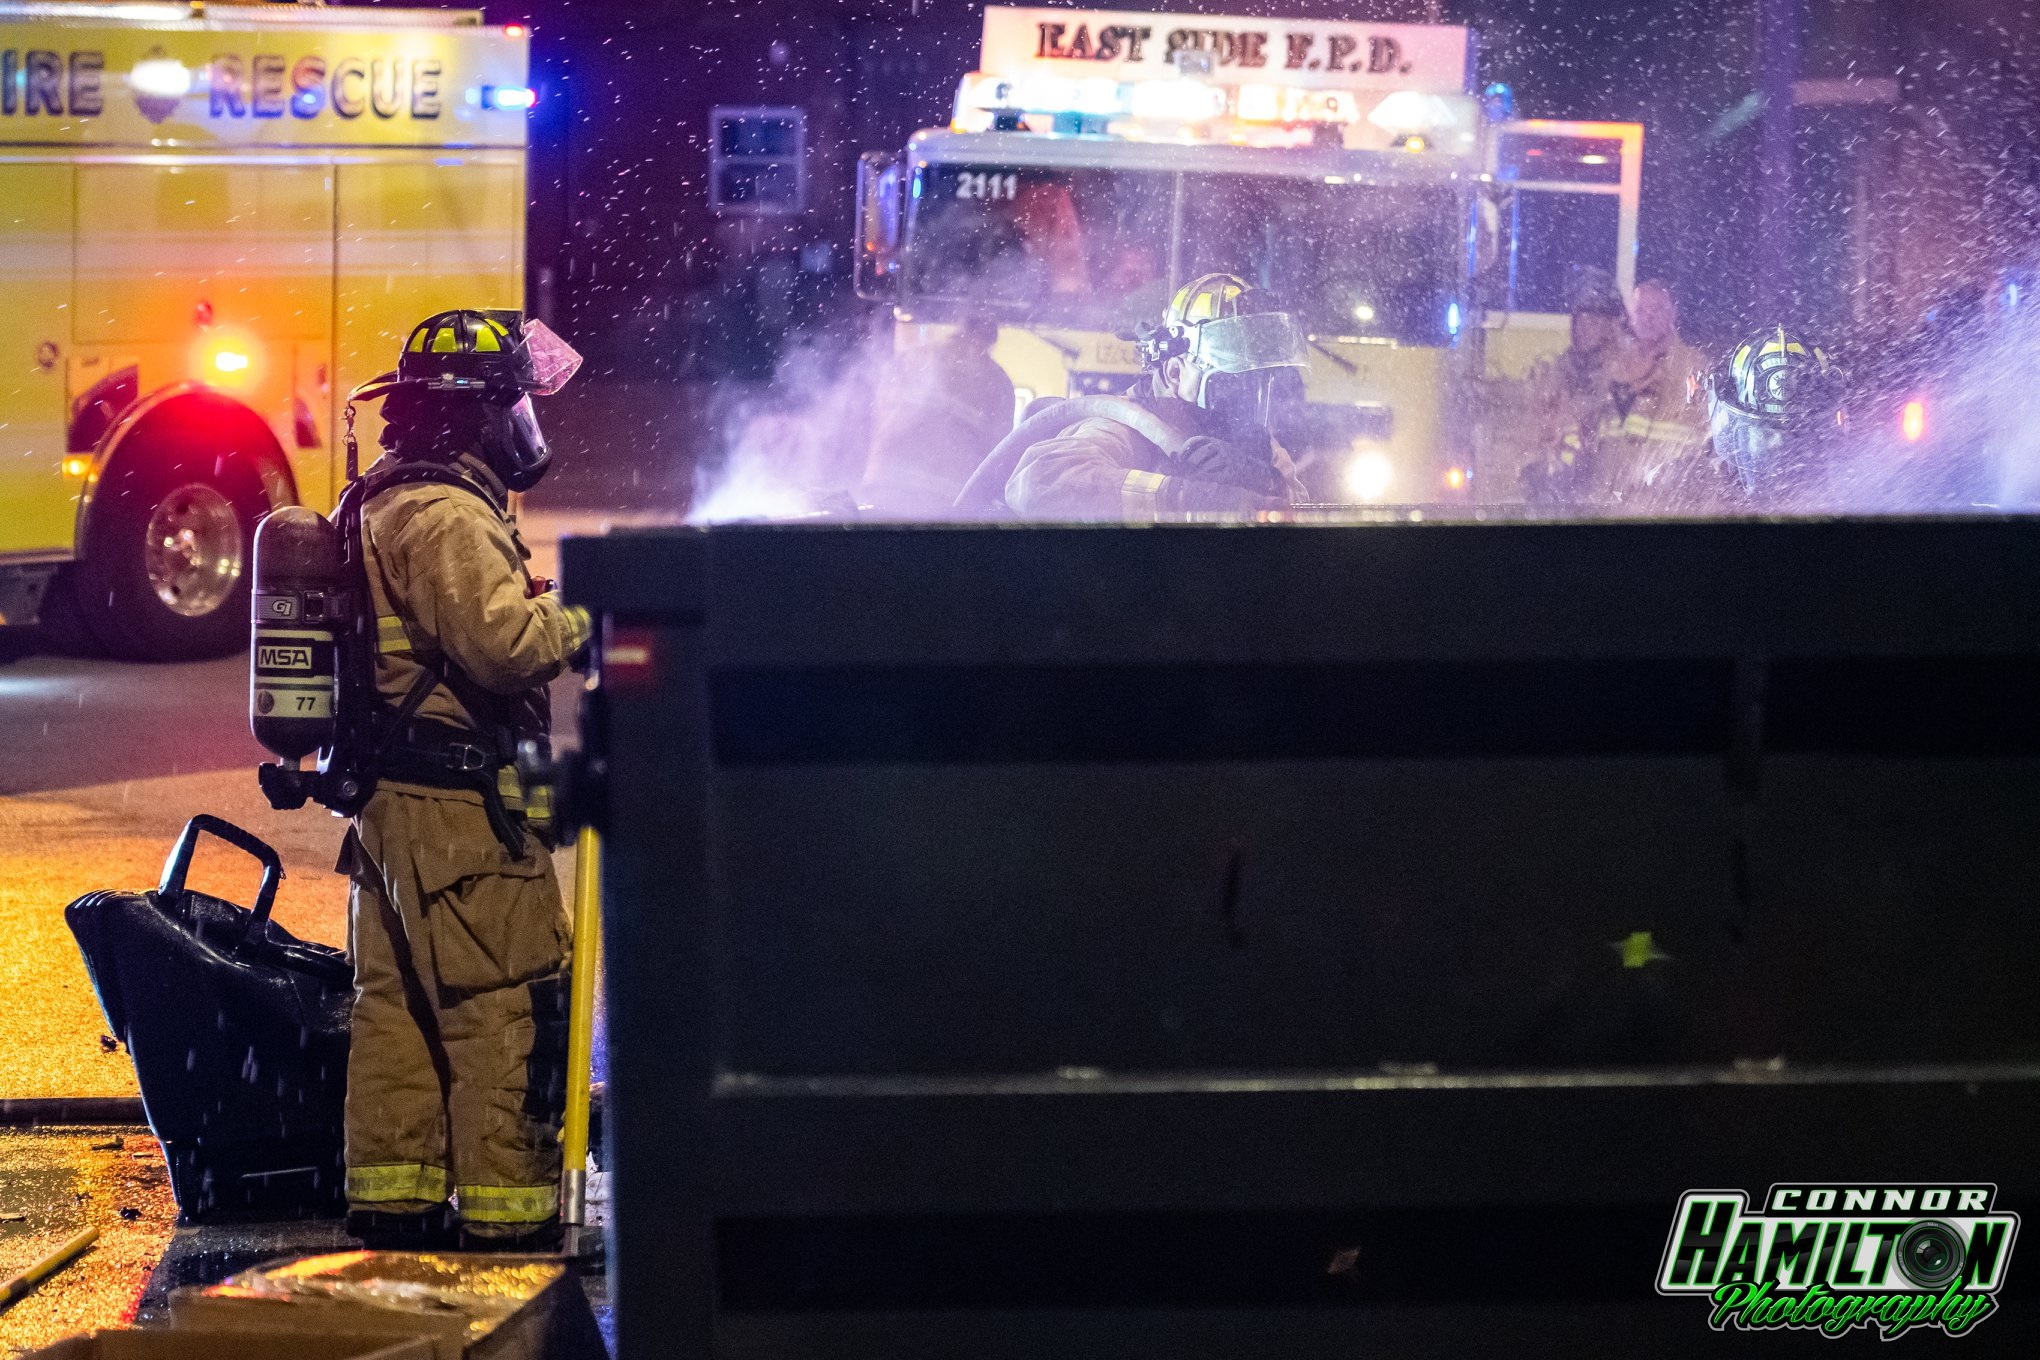 On 05/26/2019, East Side Fire responded for a dumpster fire. The fire was quickly knocked down preventing the fire from spreading to the nearby structure.